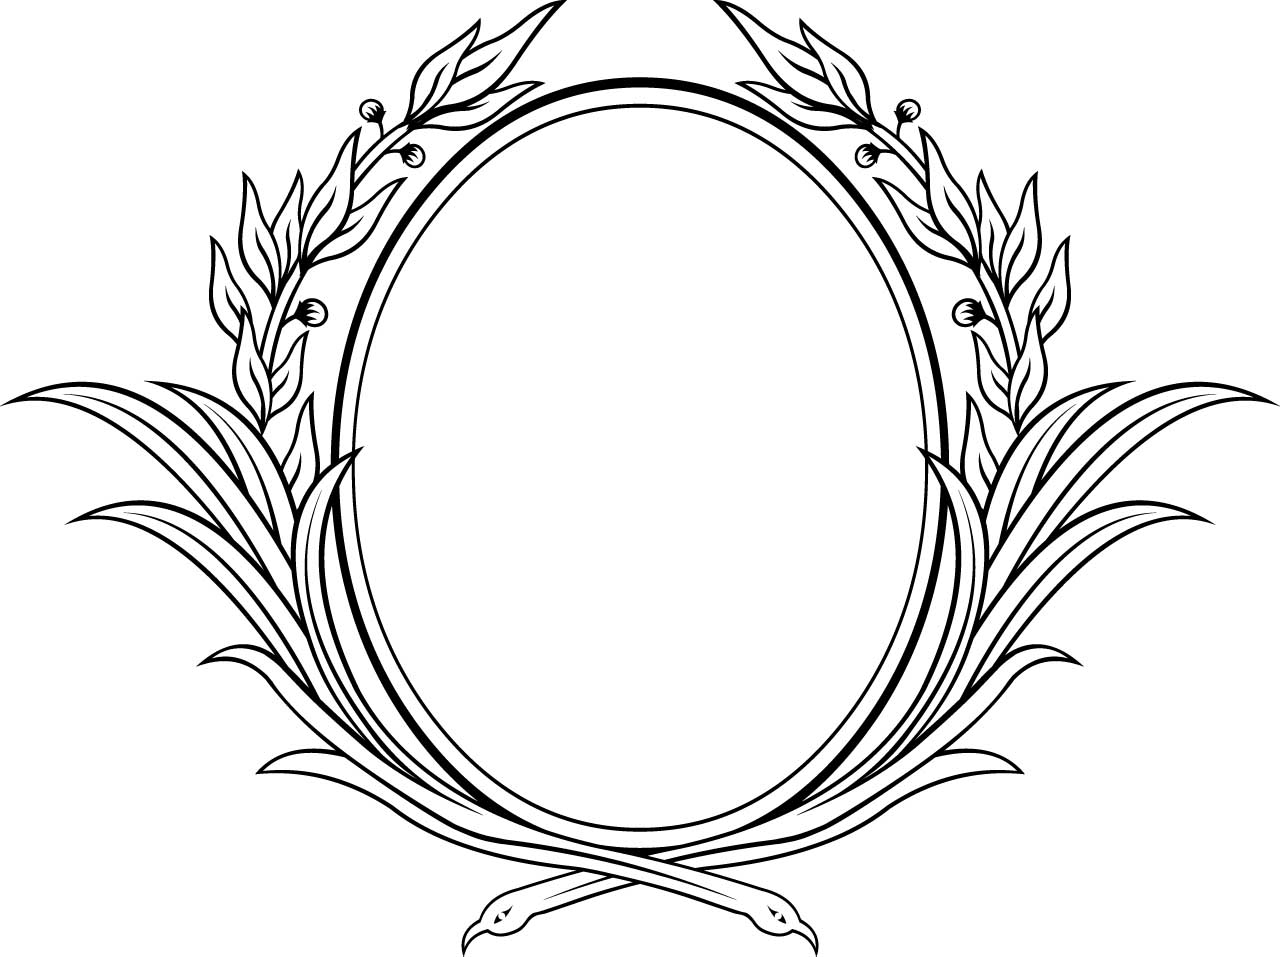 Flower Frame Drawing at GetDrawings.com | Free for personal use ...